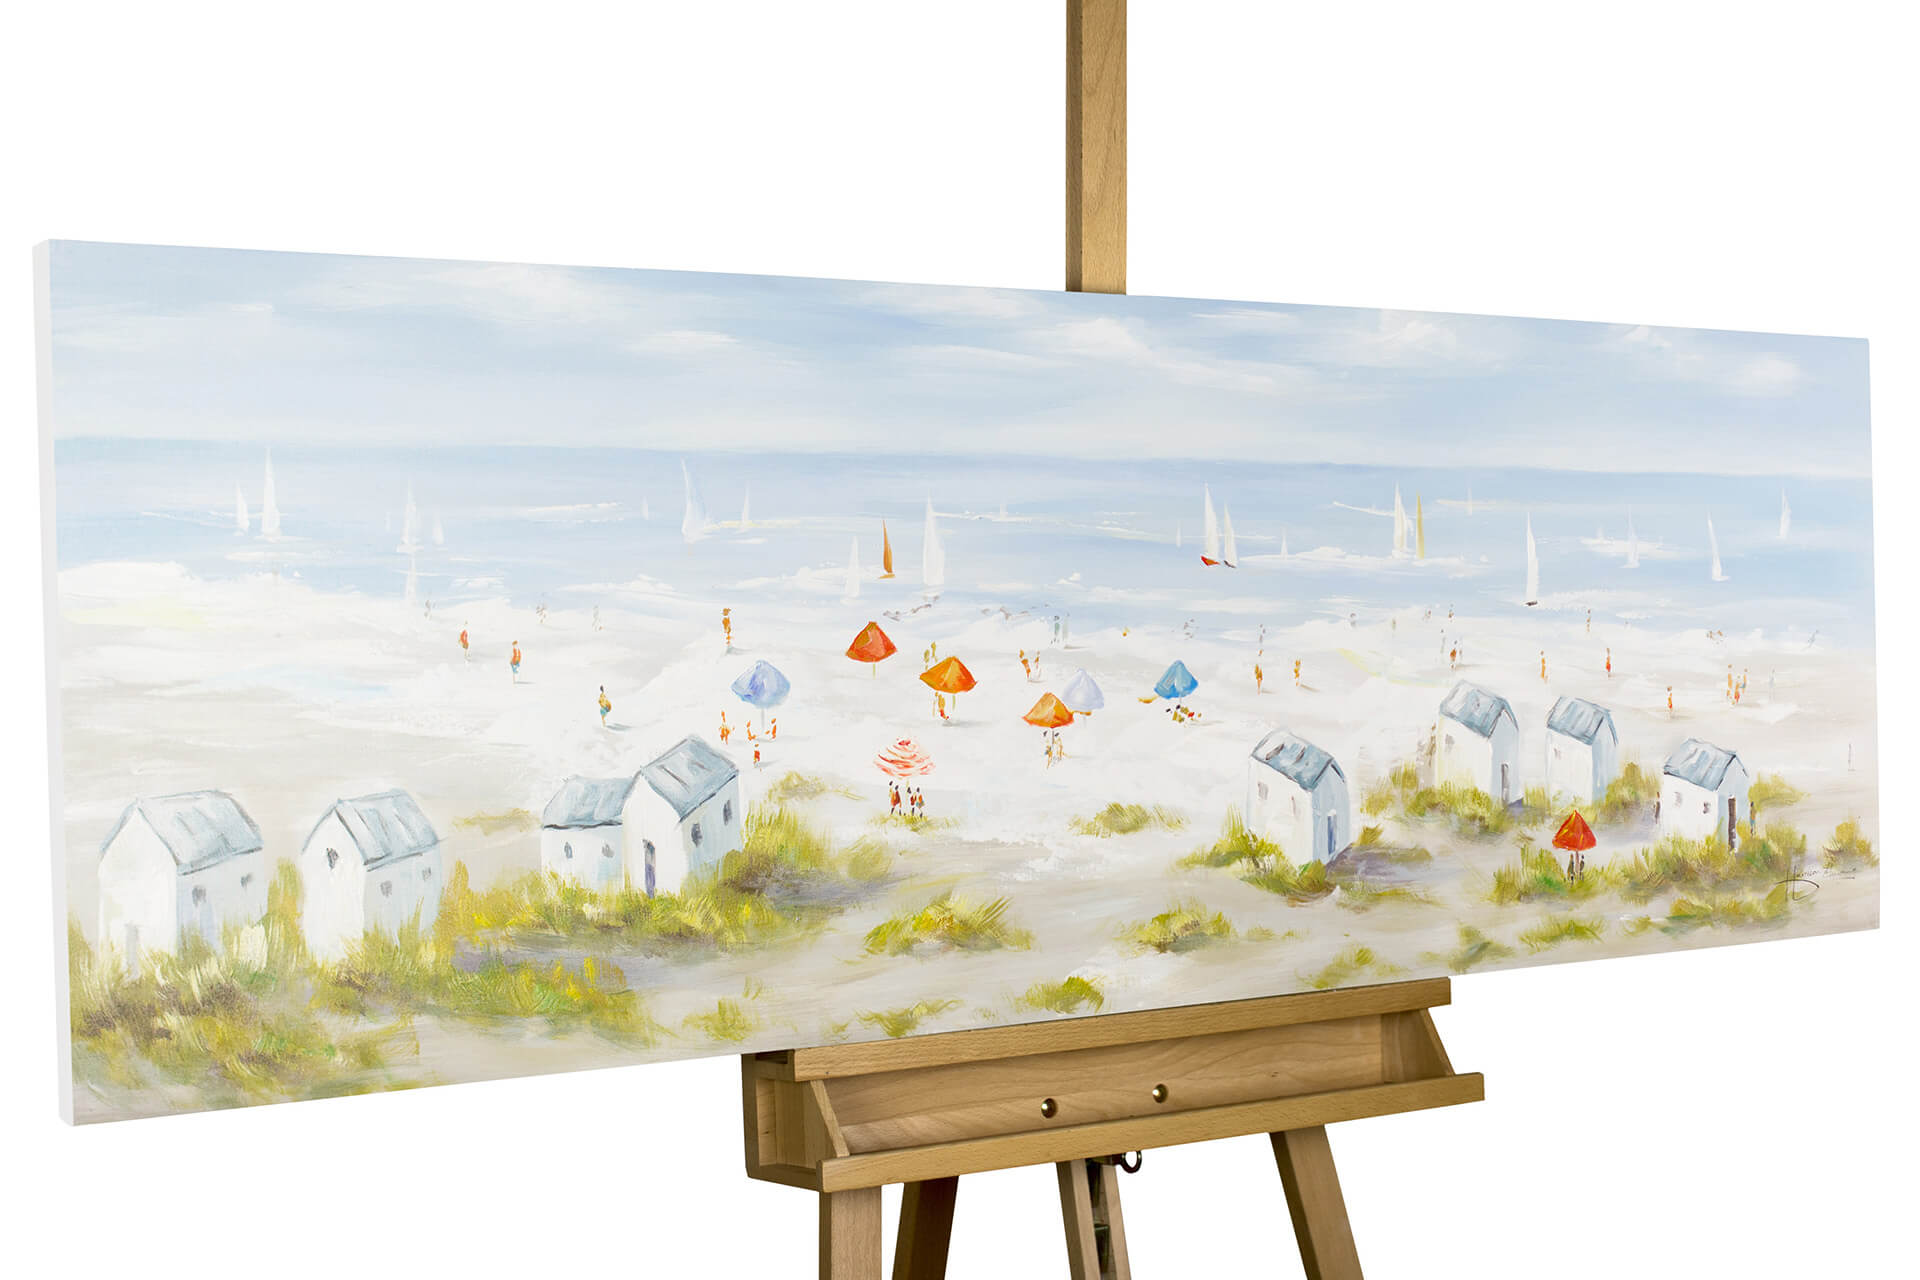 Table De Jardin Moderne Luxe Acrylic Painting Breeze From the north Sea 59×20 Inches Of 29 Frais Table De Jardin Moderne